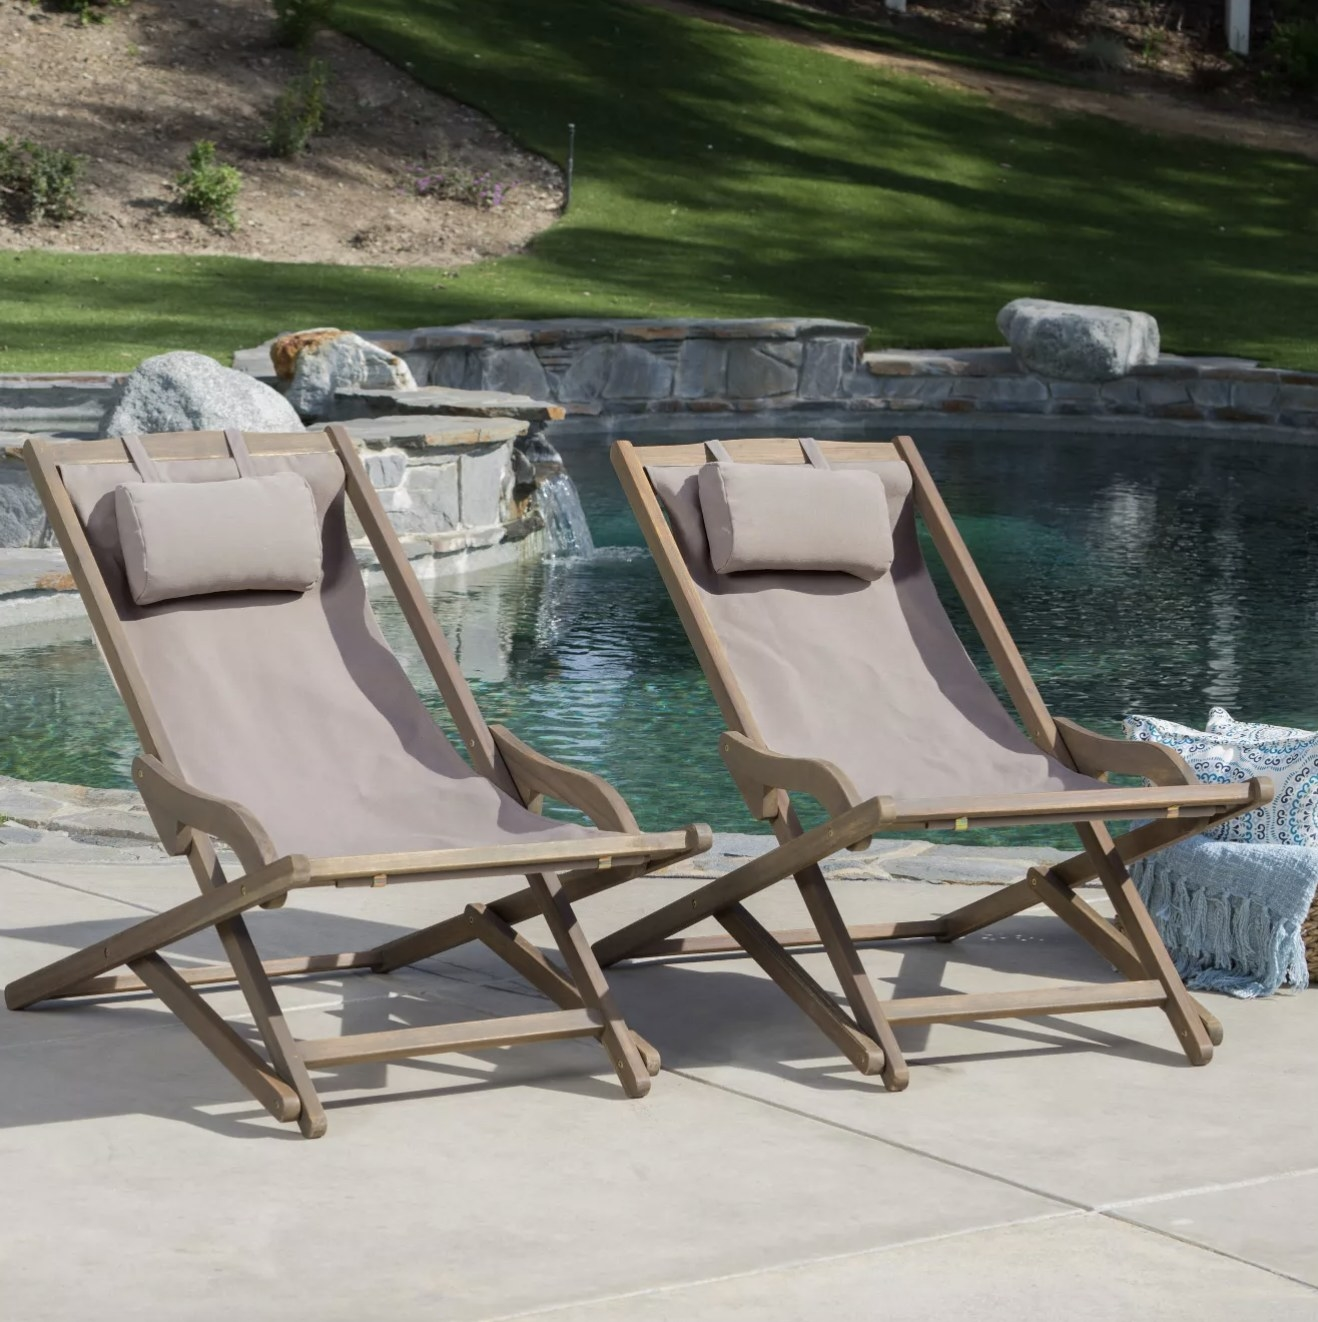 The taupe sling chairs are a mix of fabric and wood are outside near water